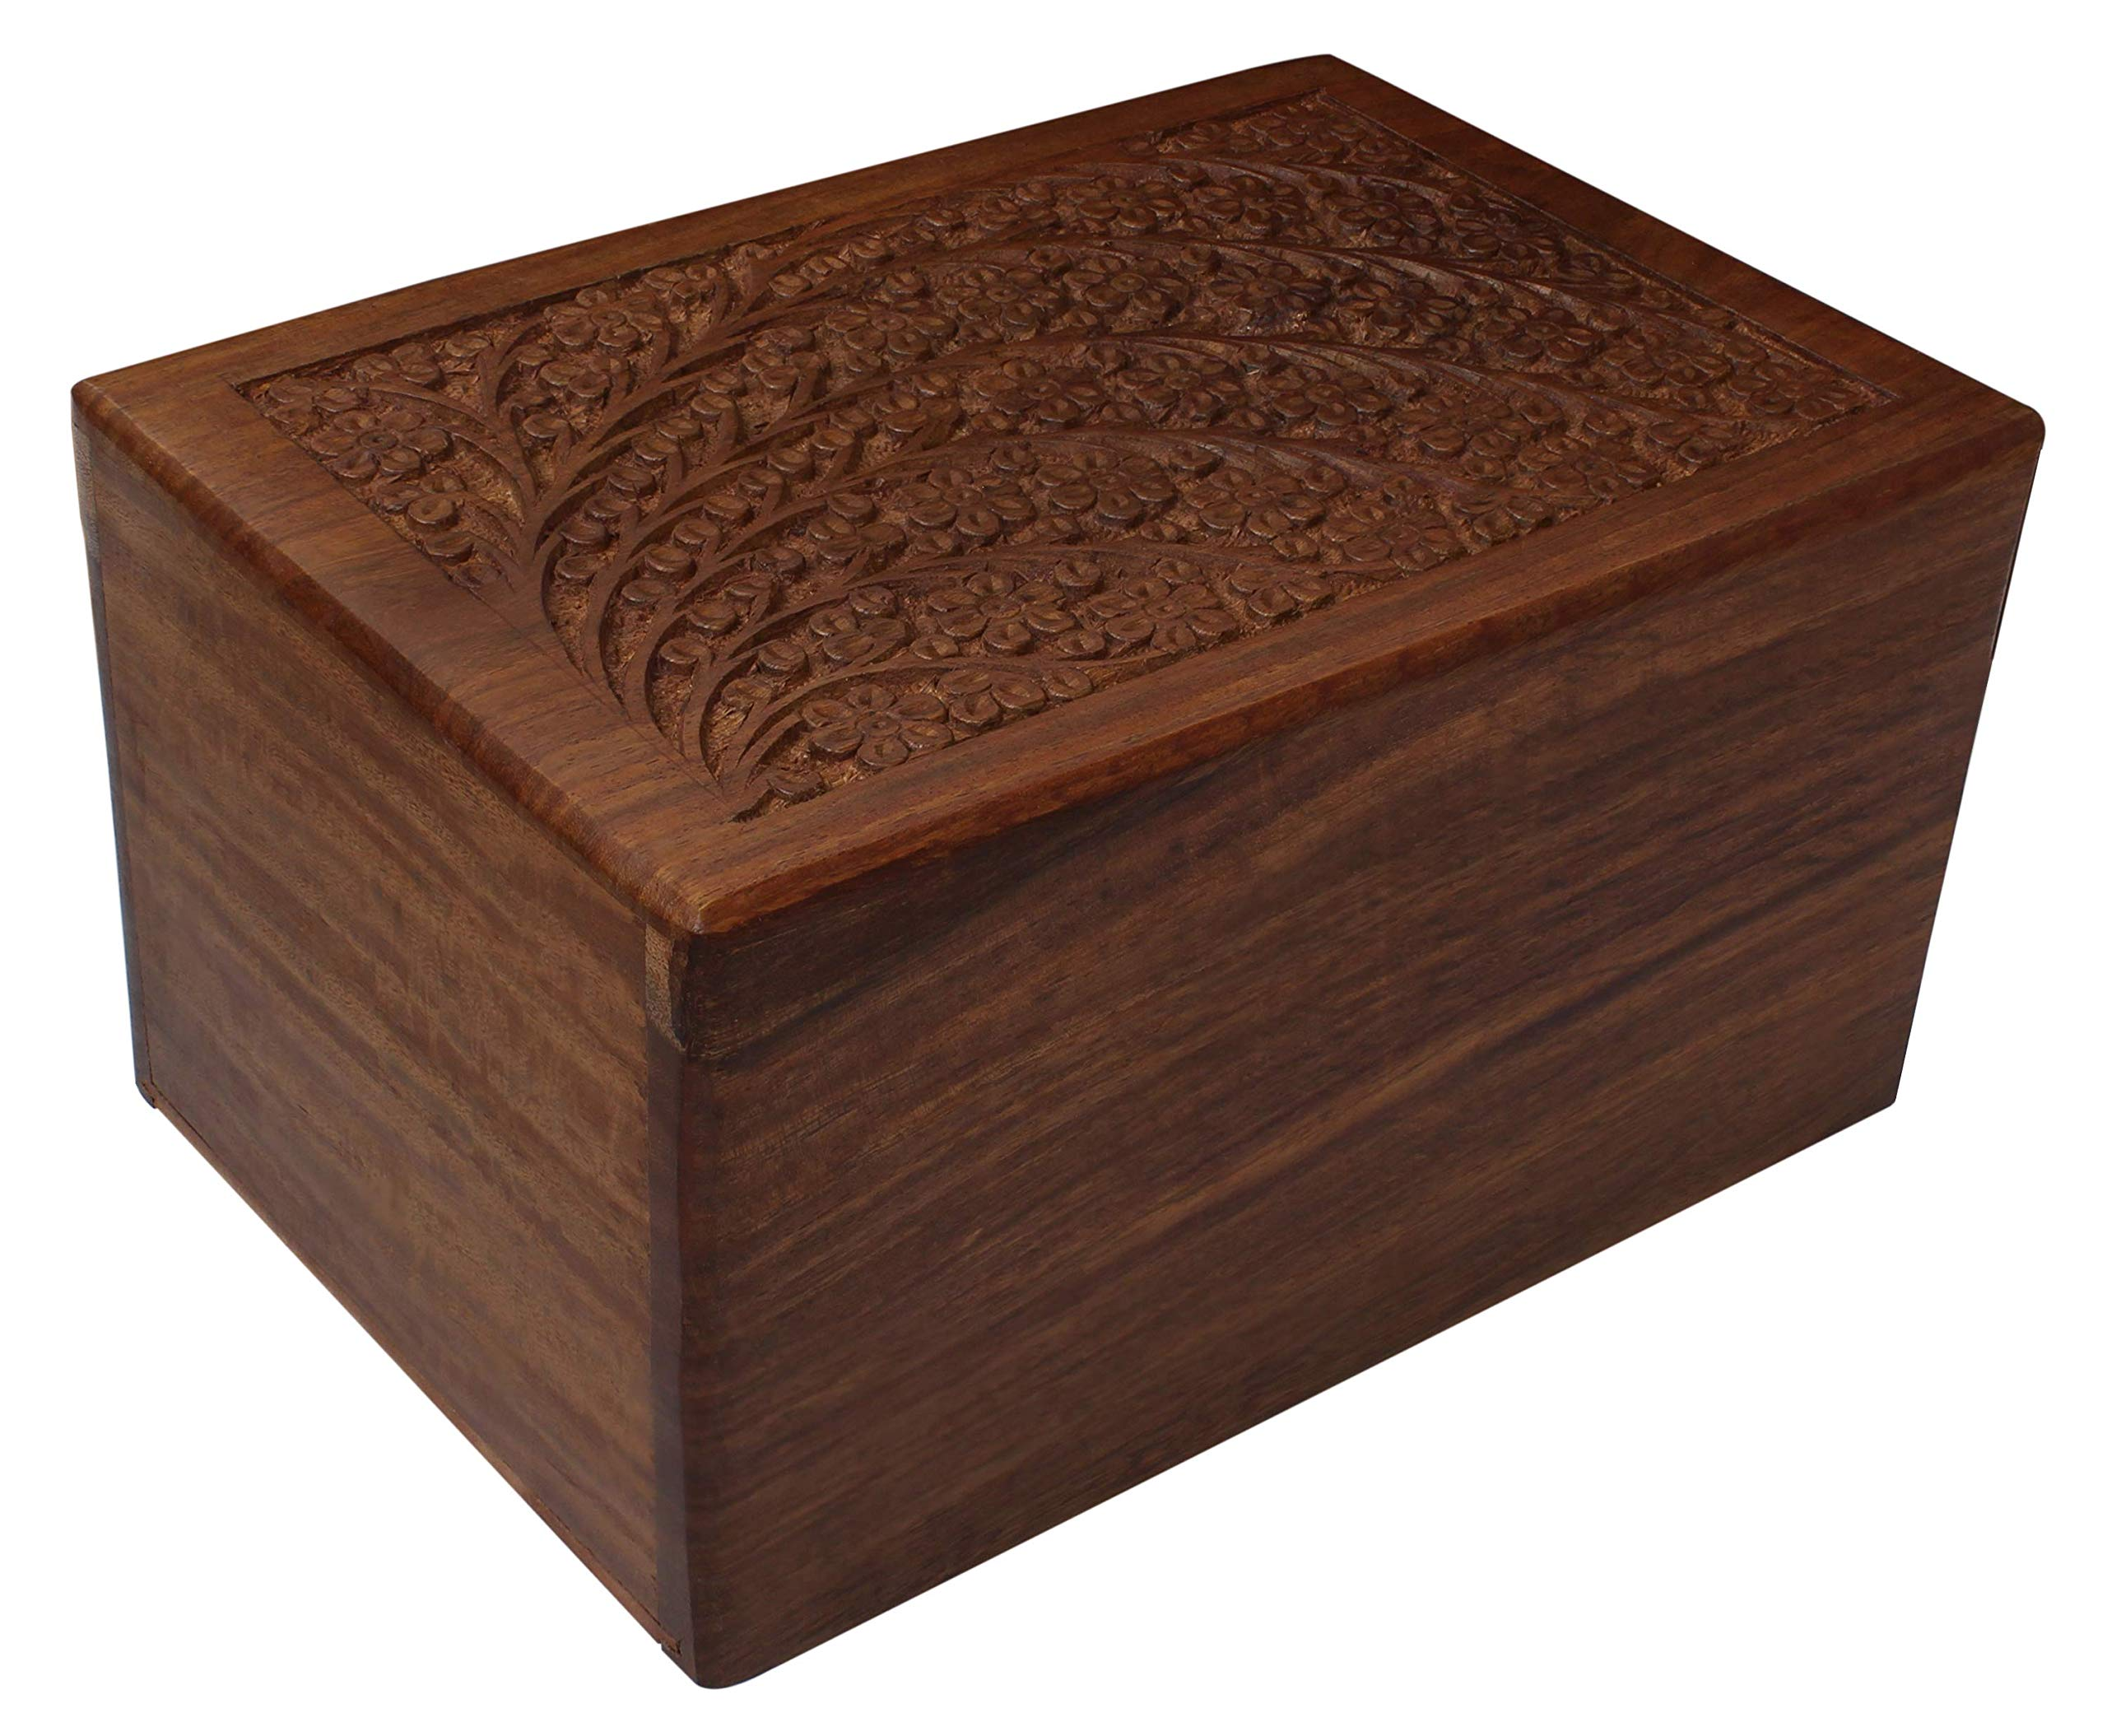 Hand-Carved Rosewood Urn Box (XX-Large)